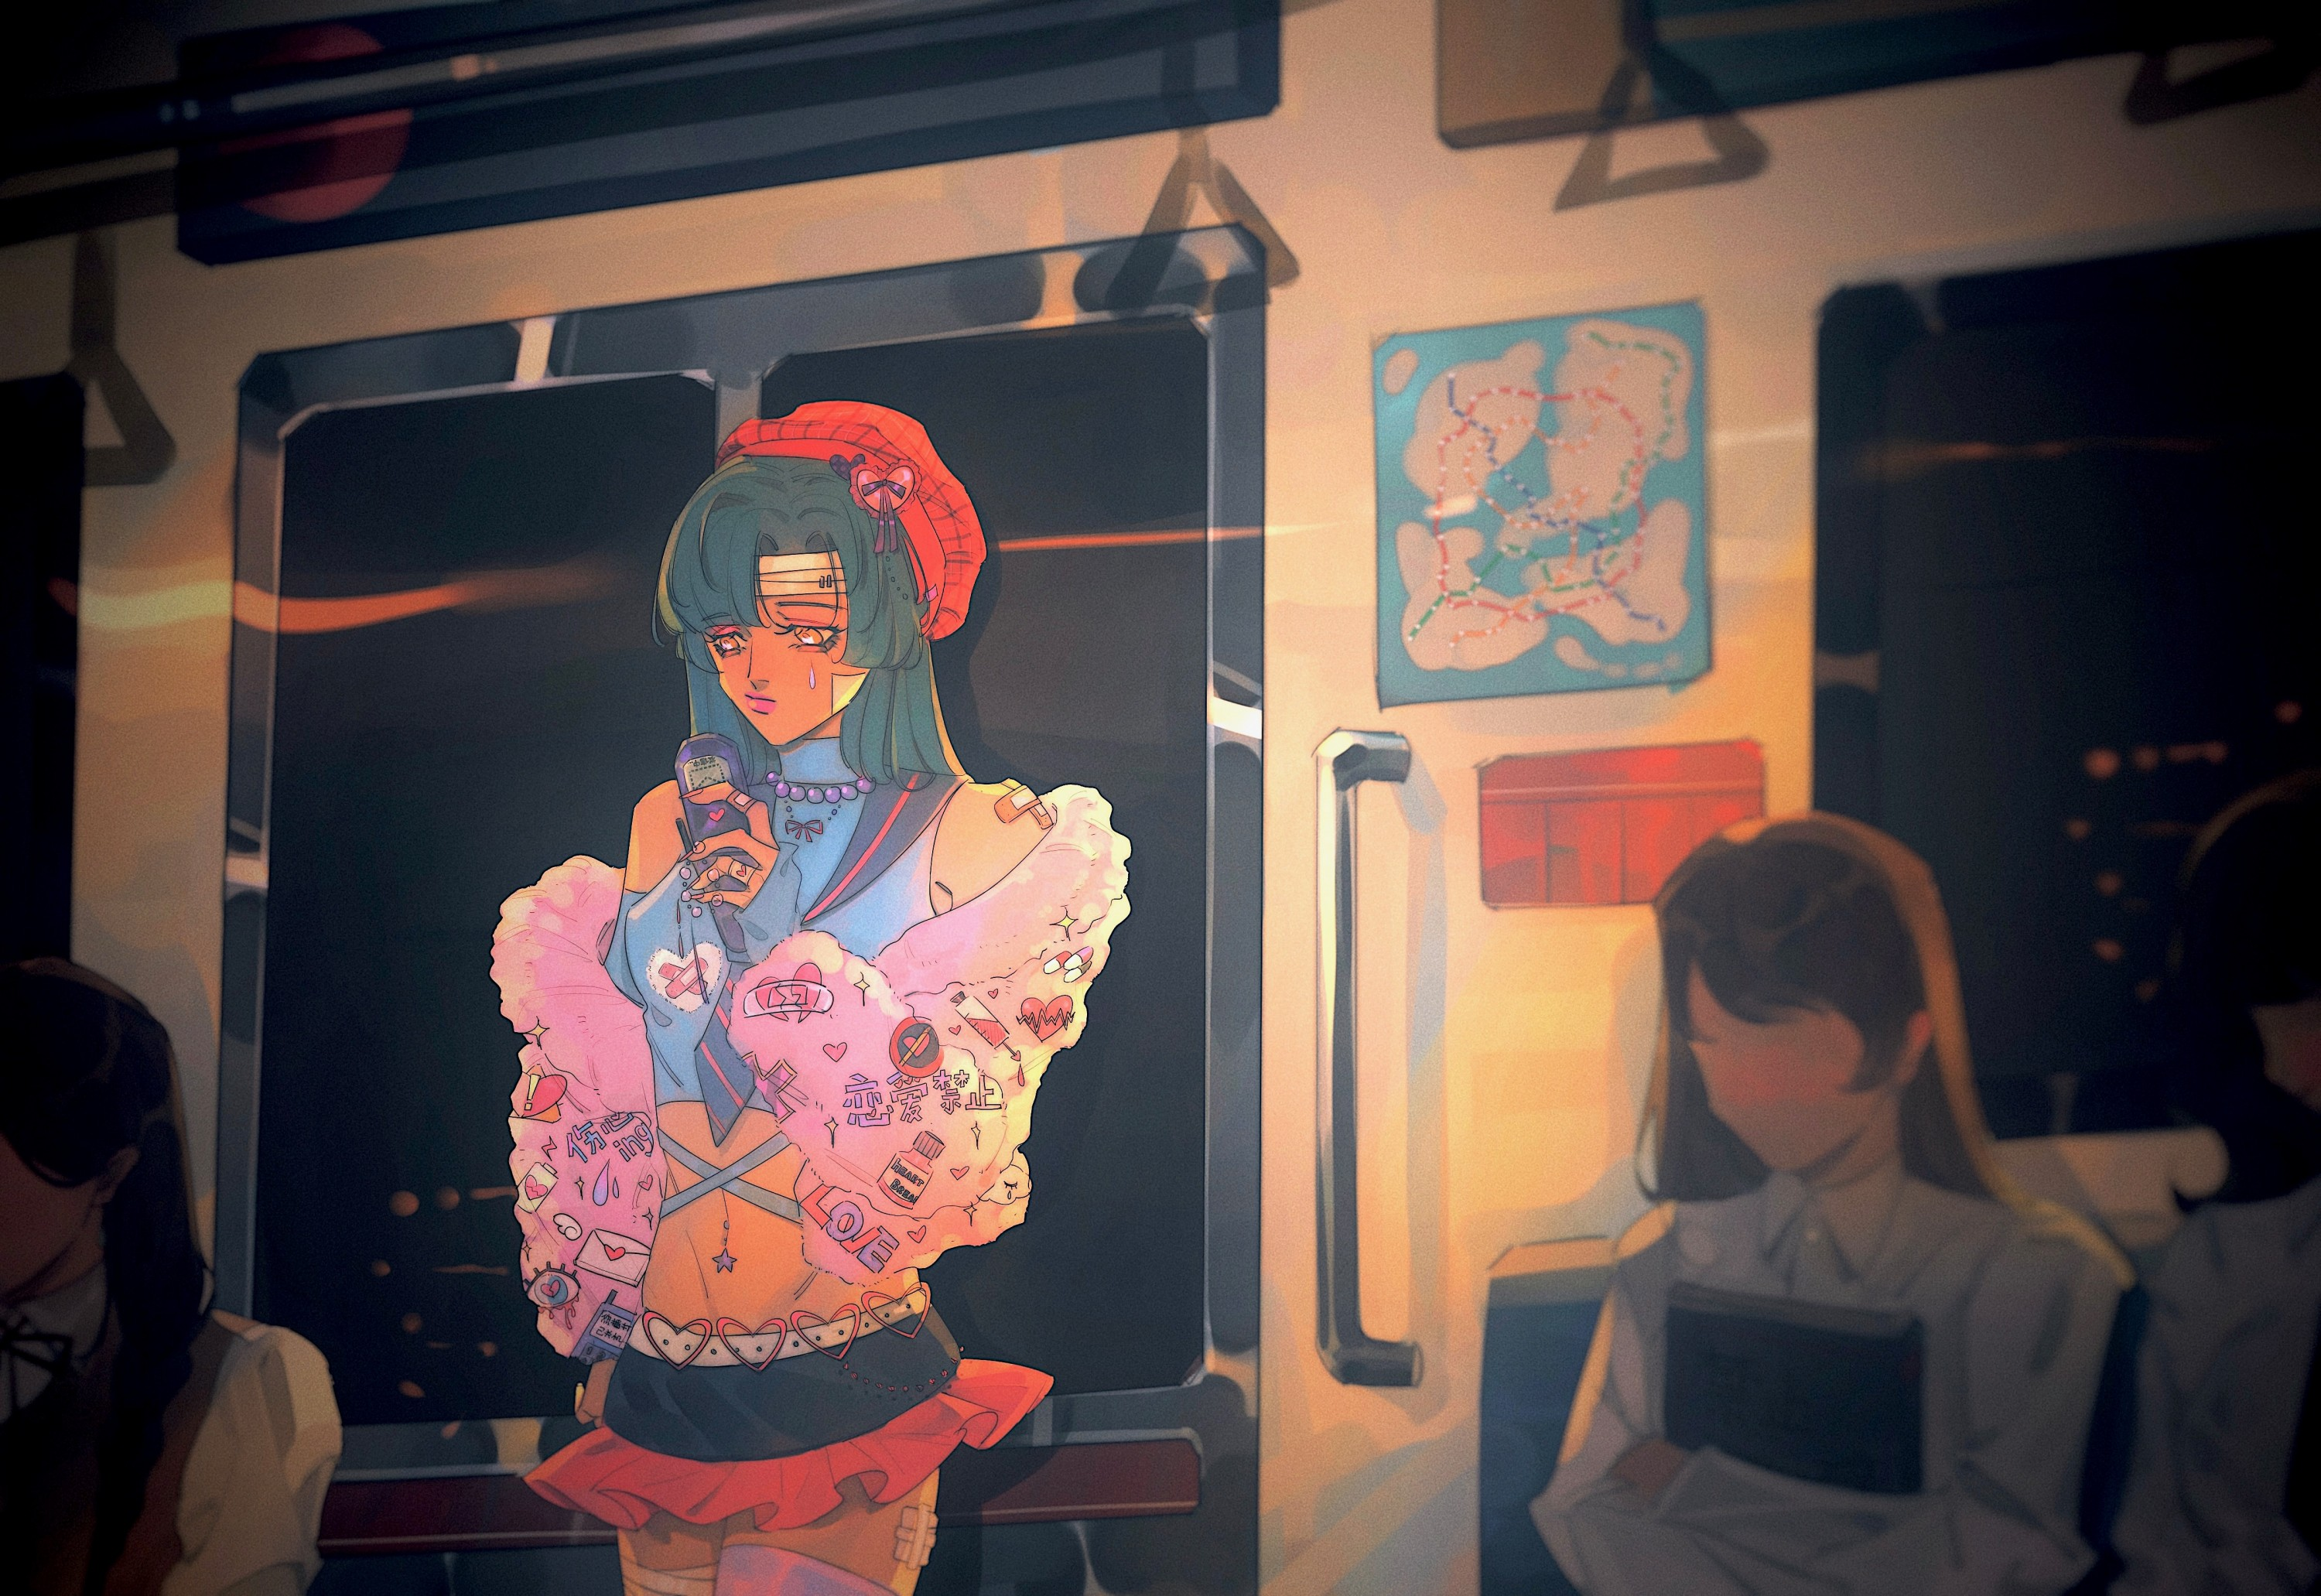 Fashionable girls in everyday life scenes